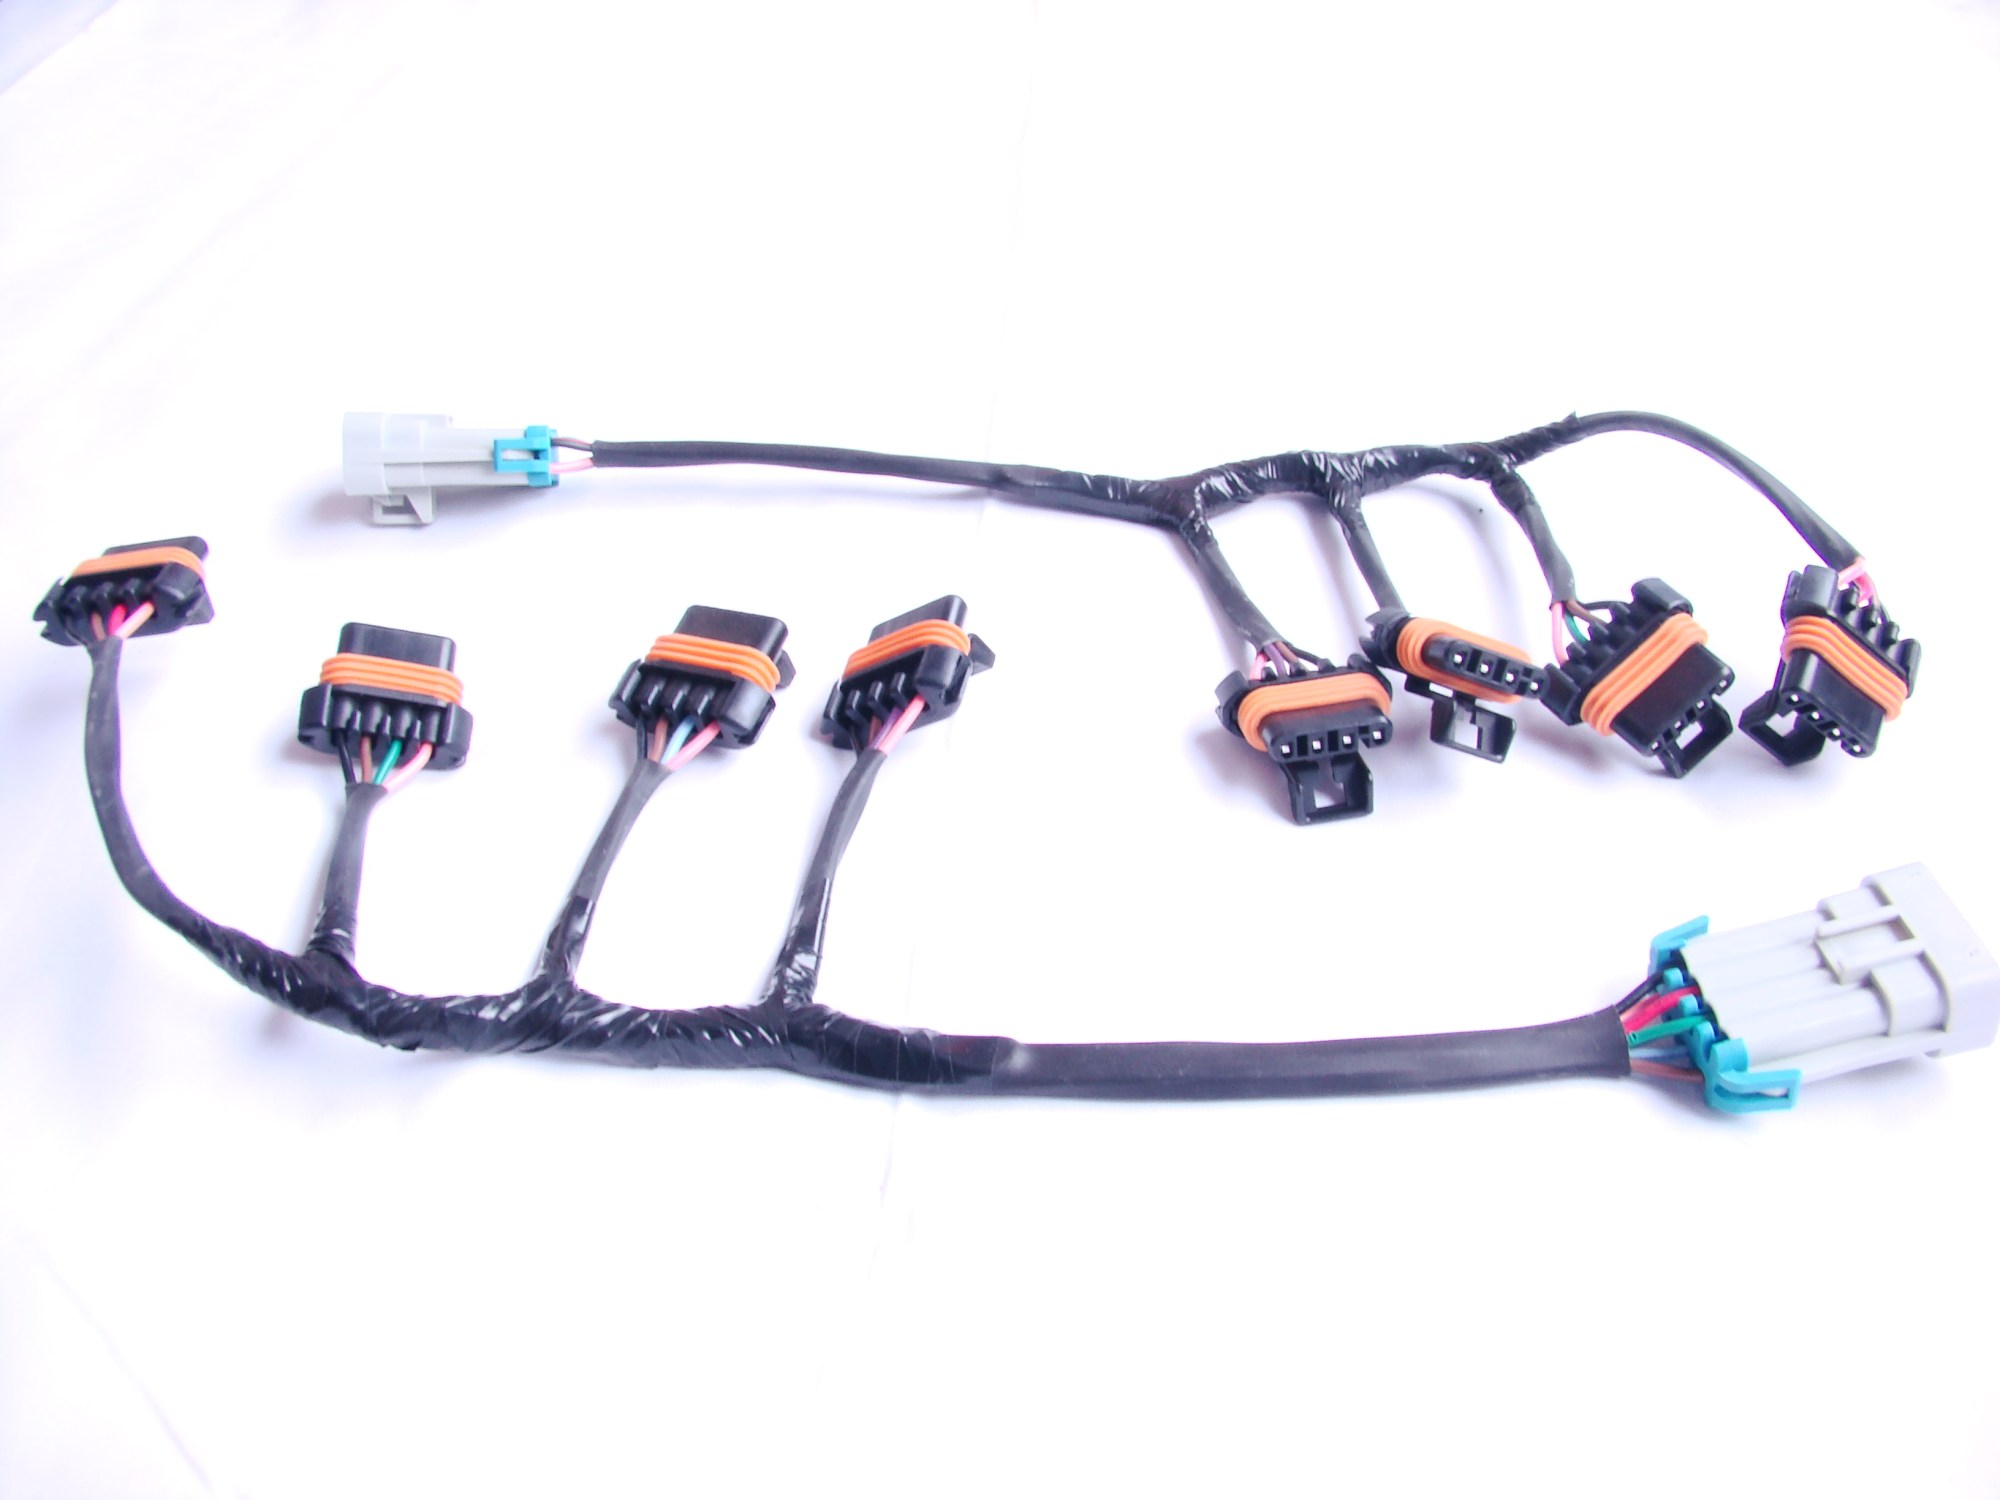 hight resolution of  dsc09304 on 3 performance lsx coil relocation sub harness ls1 ls6 ls1 coil pack wiring